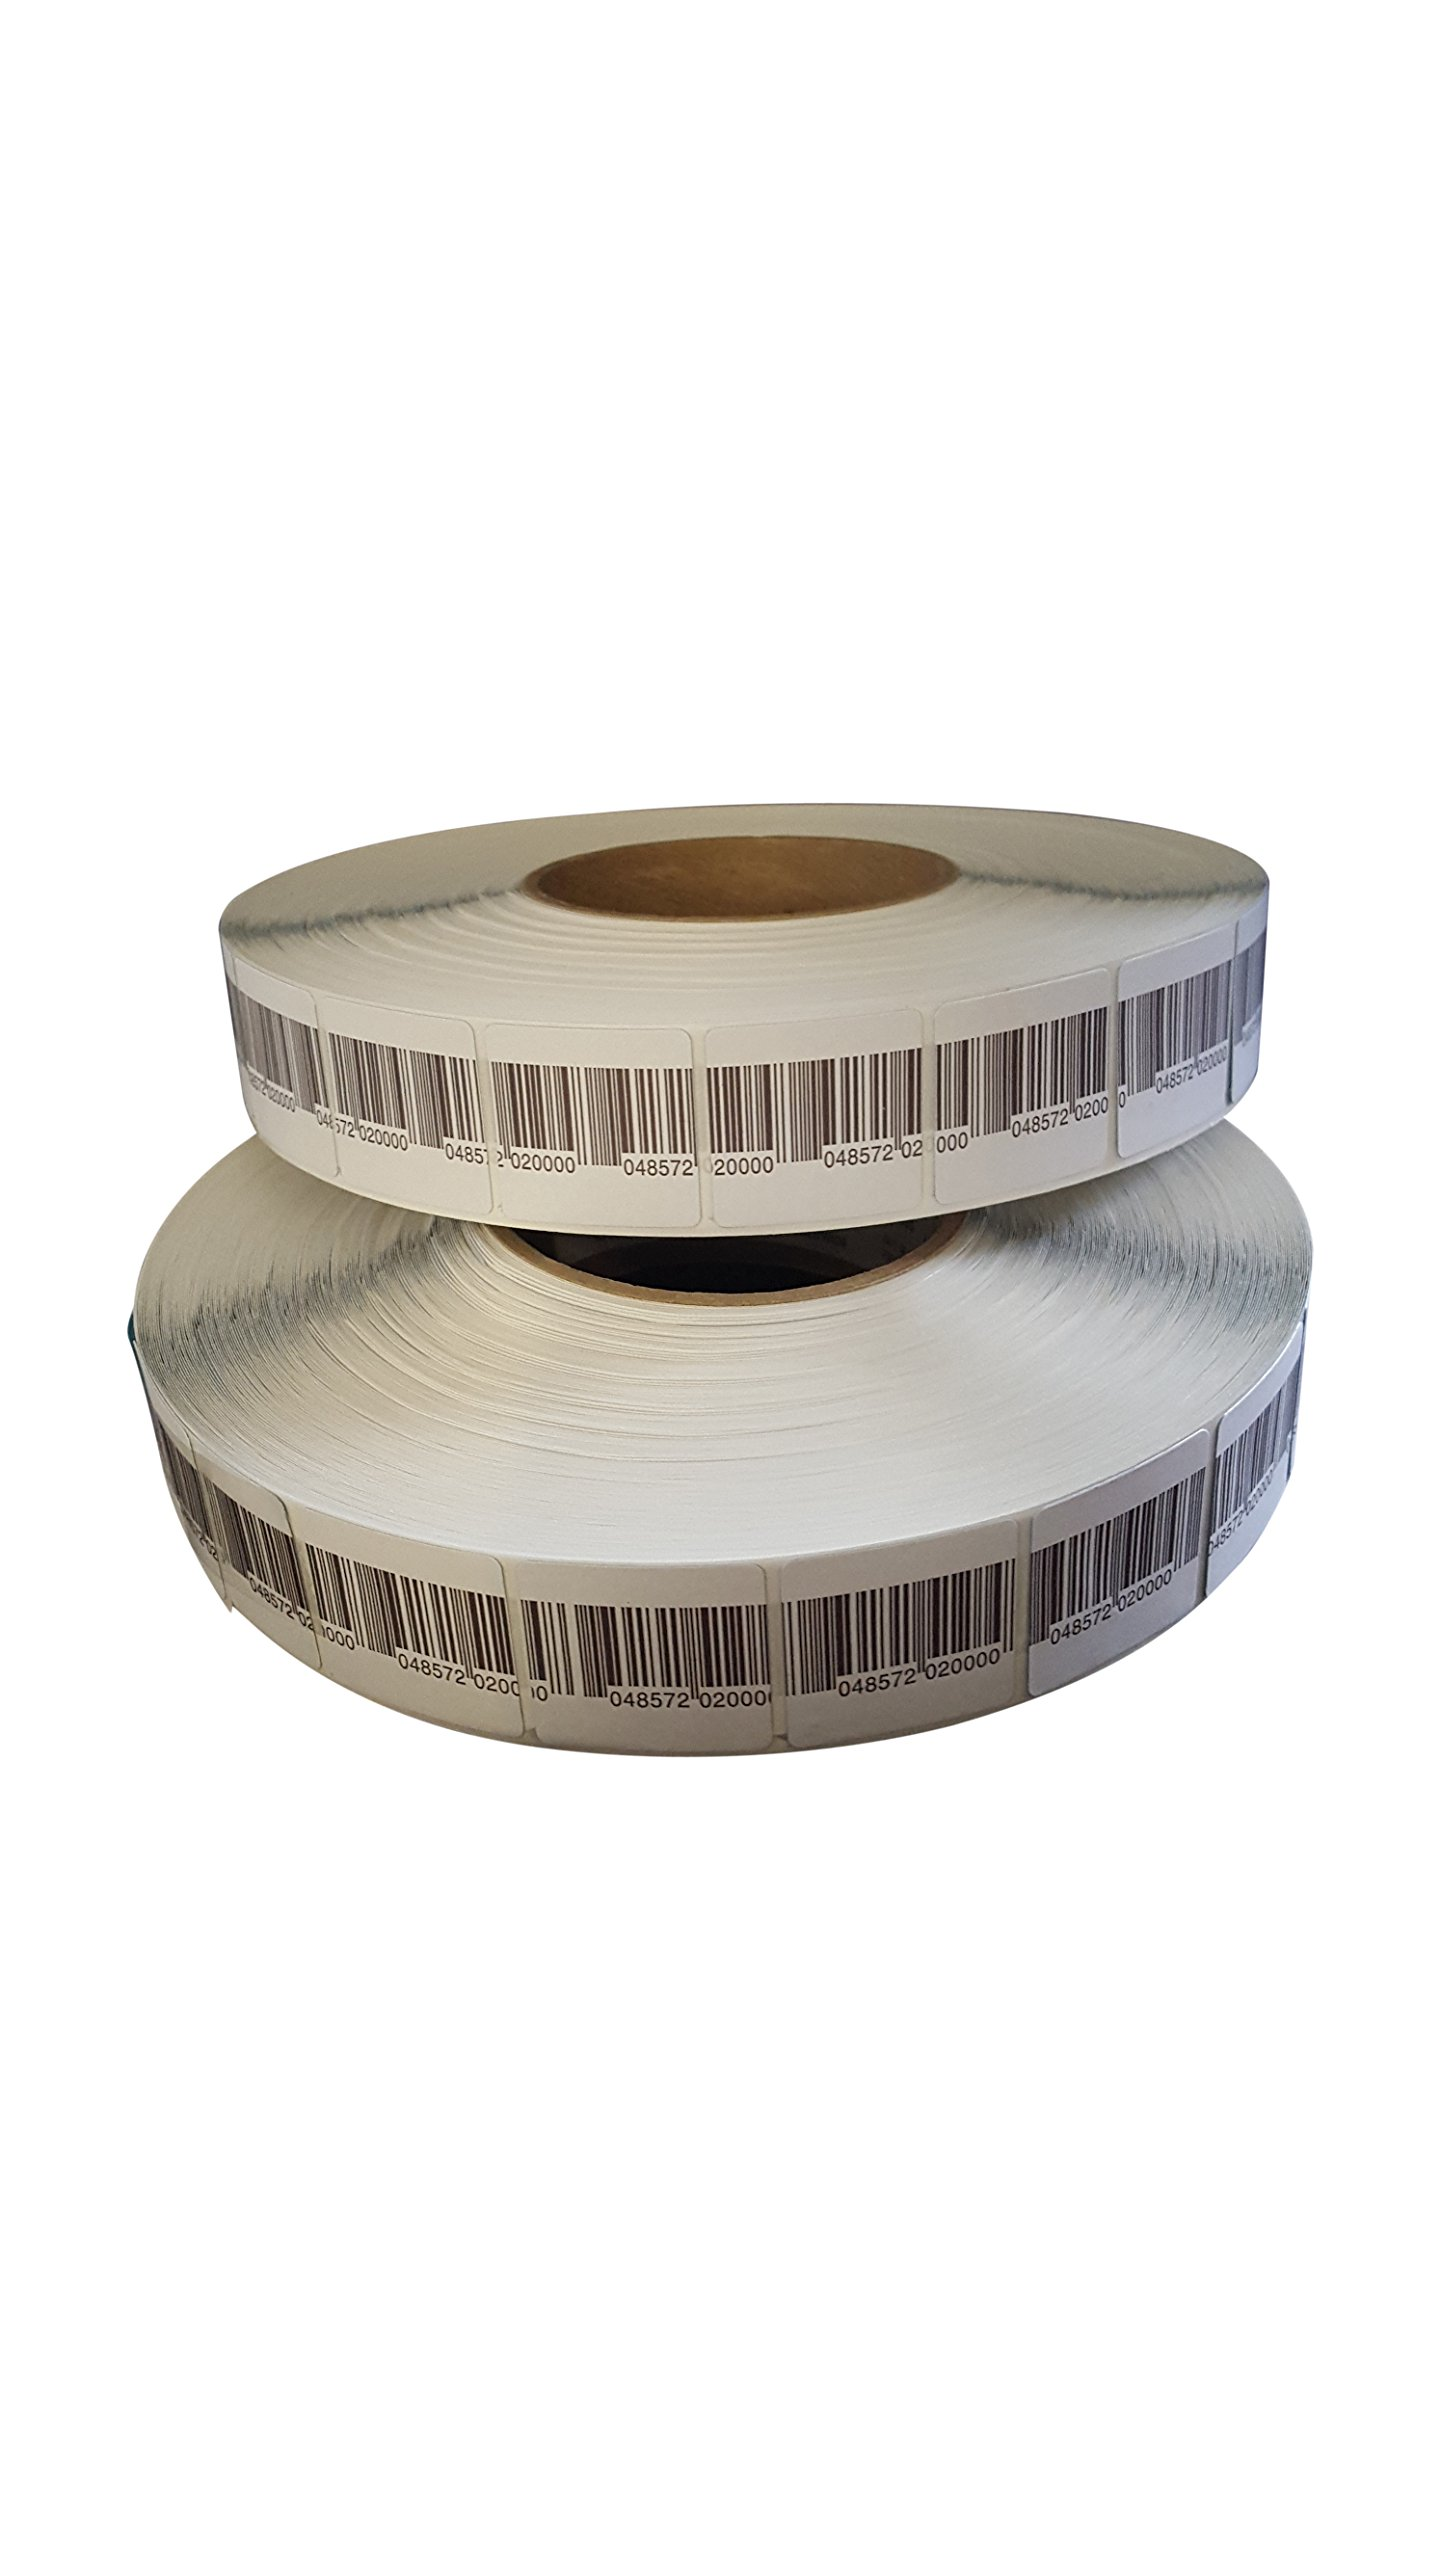 Checkpoint Compatible 8.2 MH RF Label 31x32mm, Fake Barcode, 1 Roll of 2K